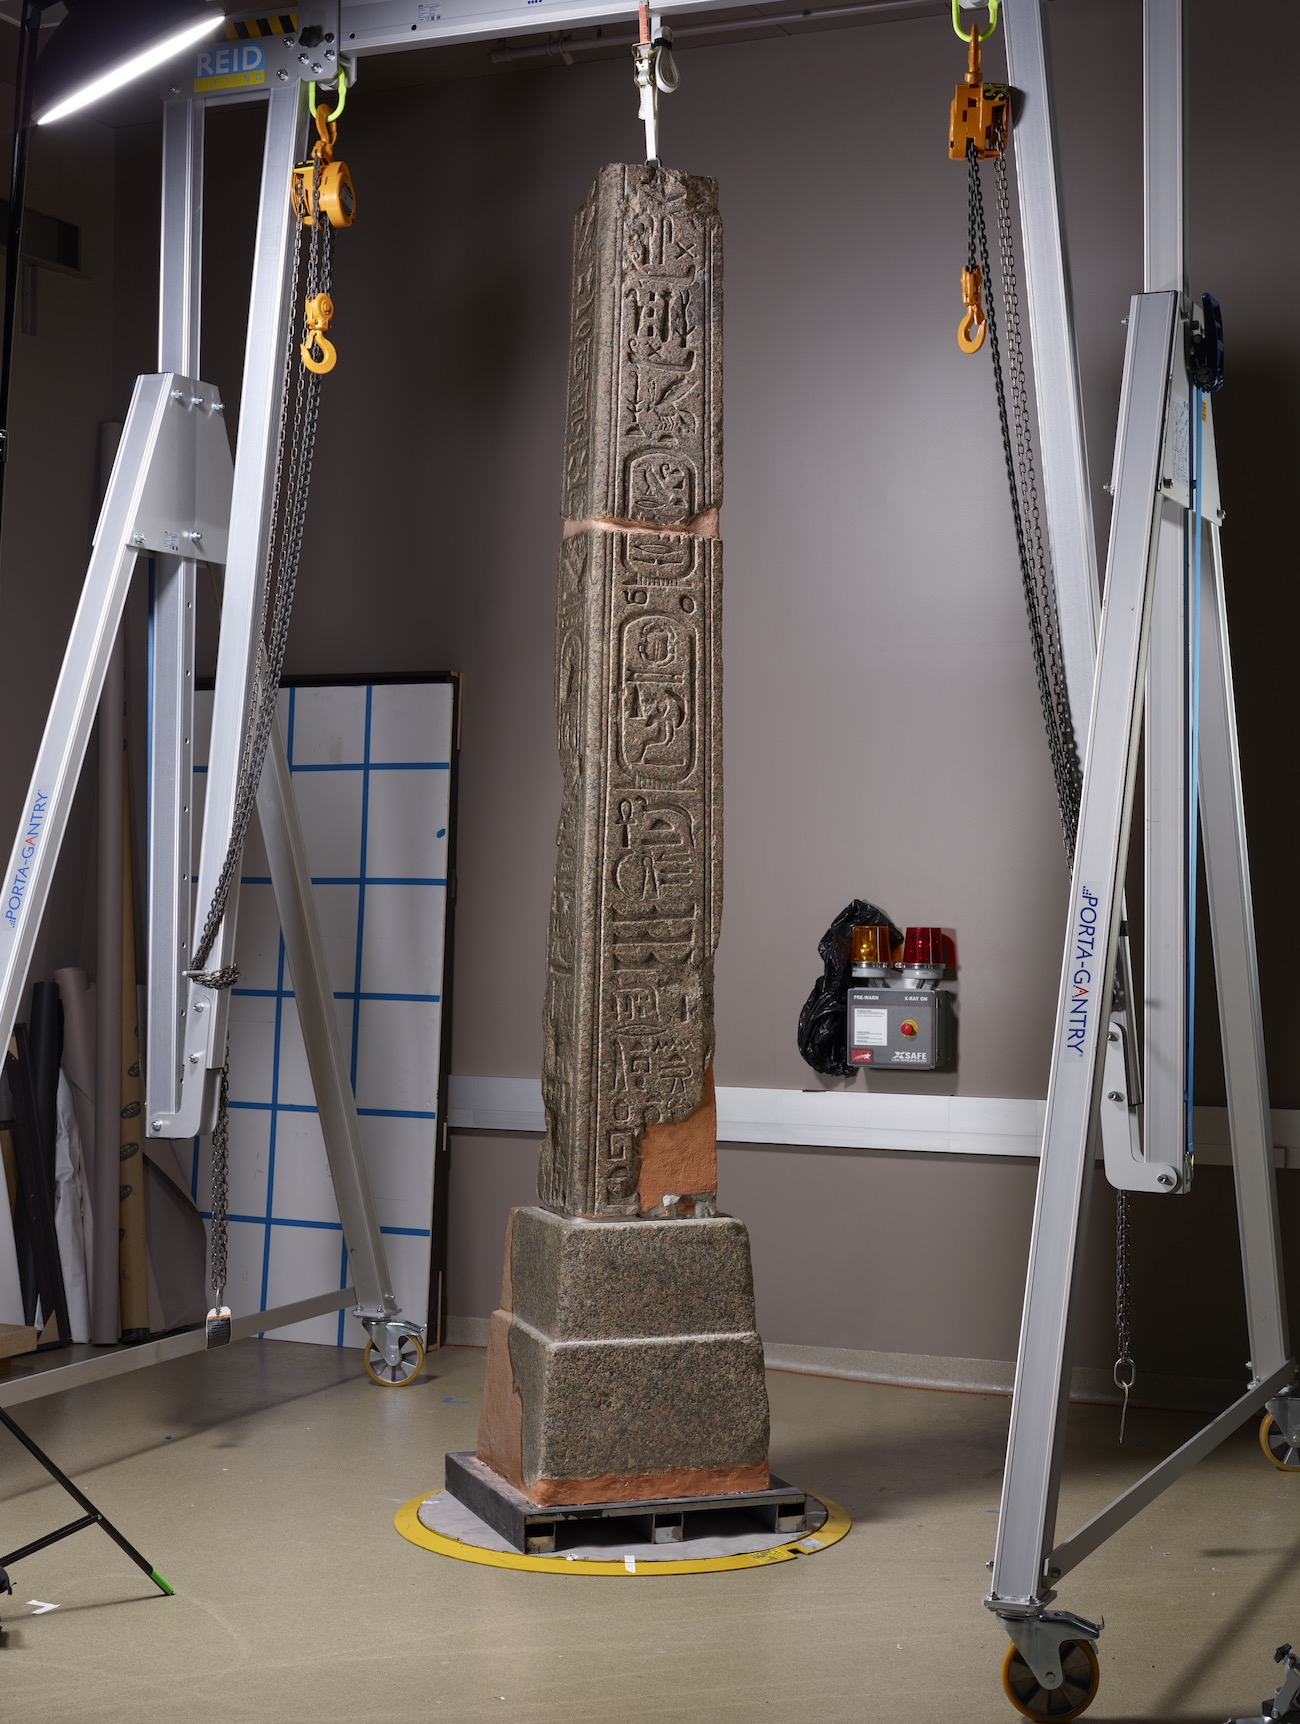 Egyptian obelisk in a conservation studio, illuminated by raking (side) light